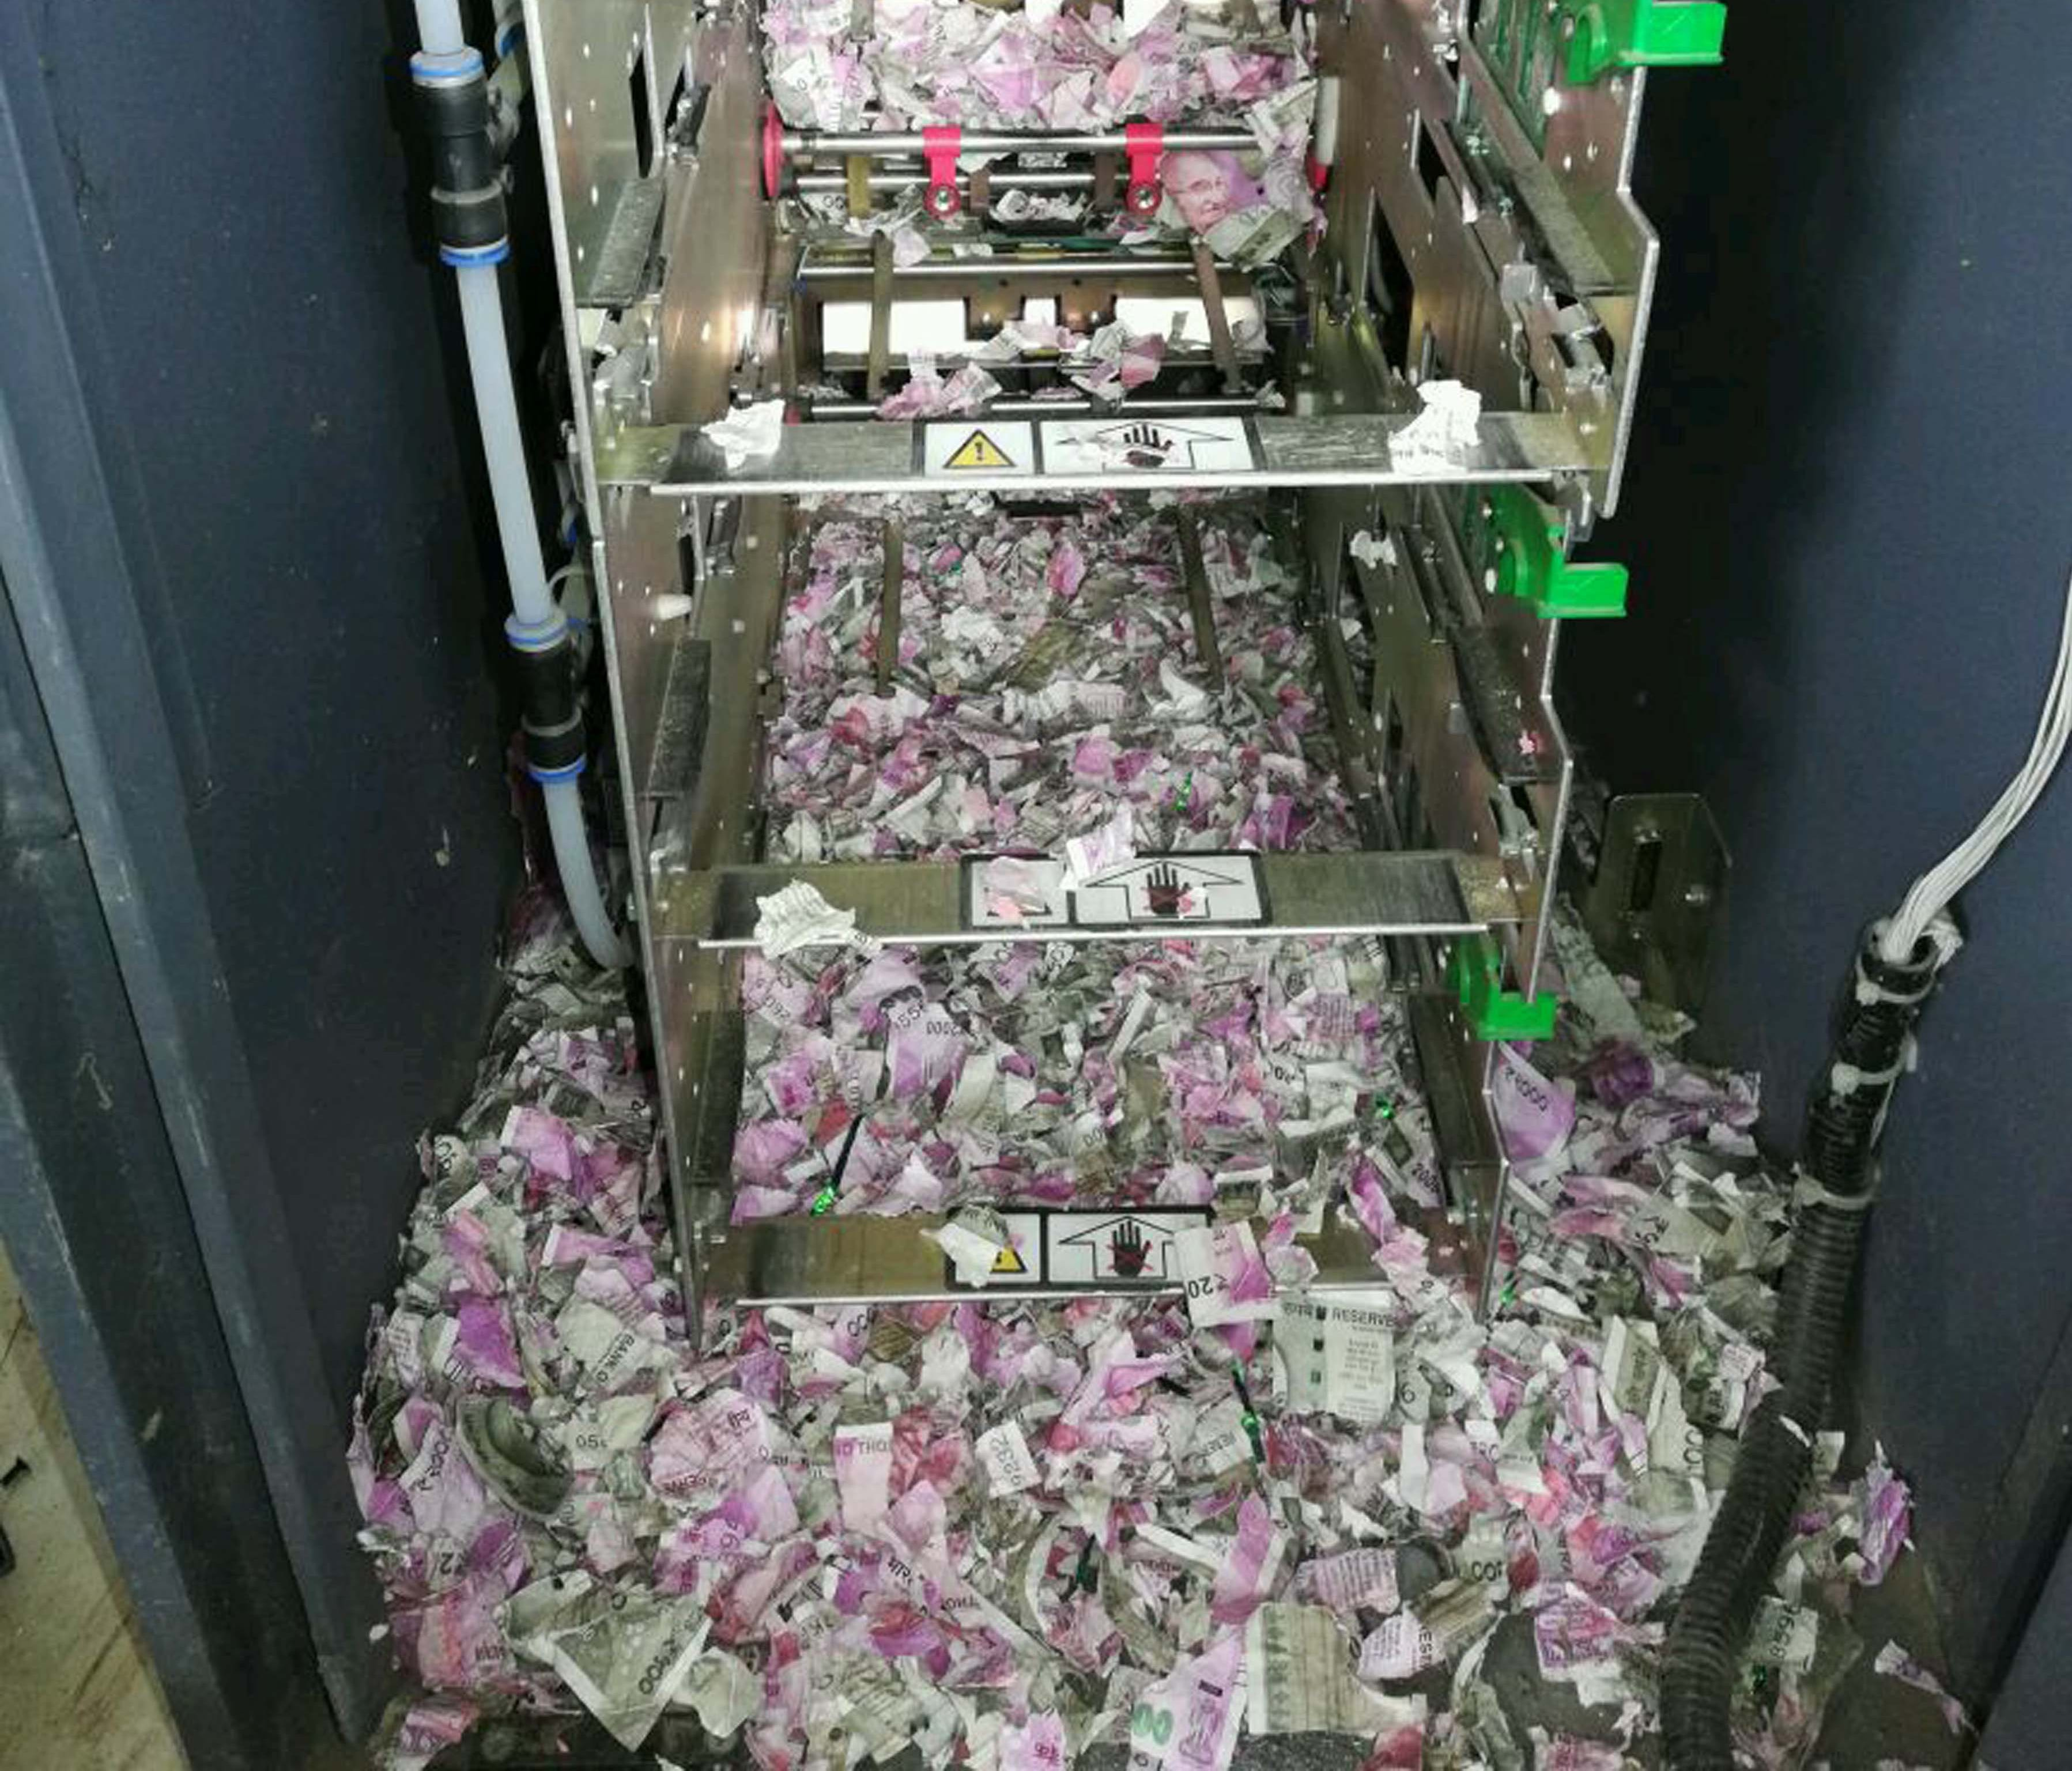 This picture taken on June 19 shows shredded Indian currency notes in 2000 and 500 rupee denominations after being eaten by at least one rat in at ATM in Tinsukia in India's northeastern Assam state.    Indian police on June 21 said rats nibbled throug